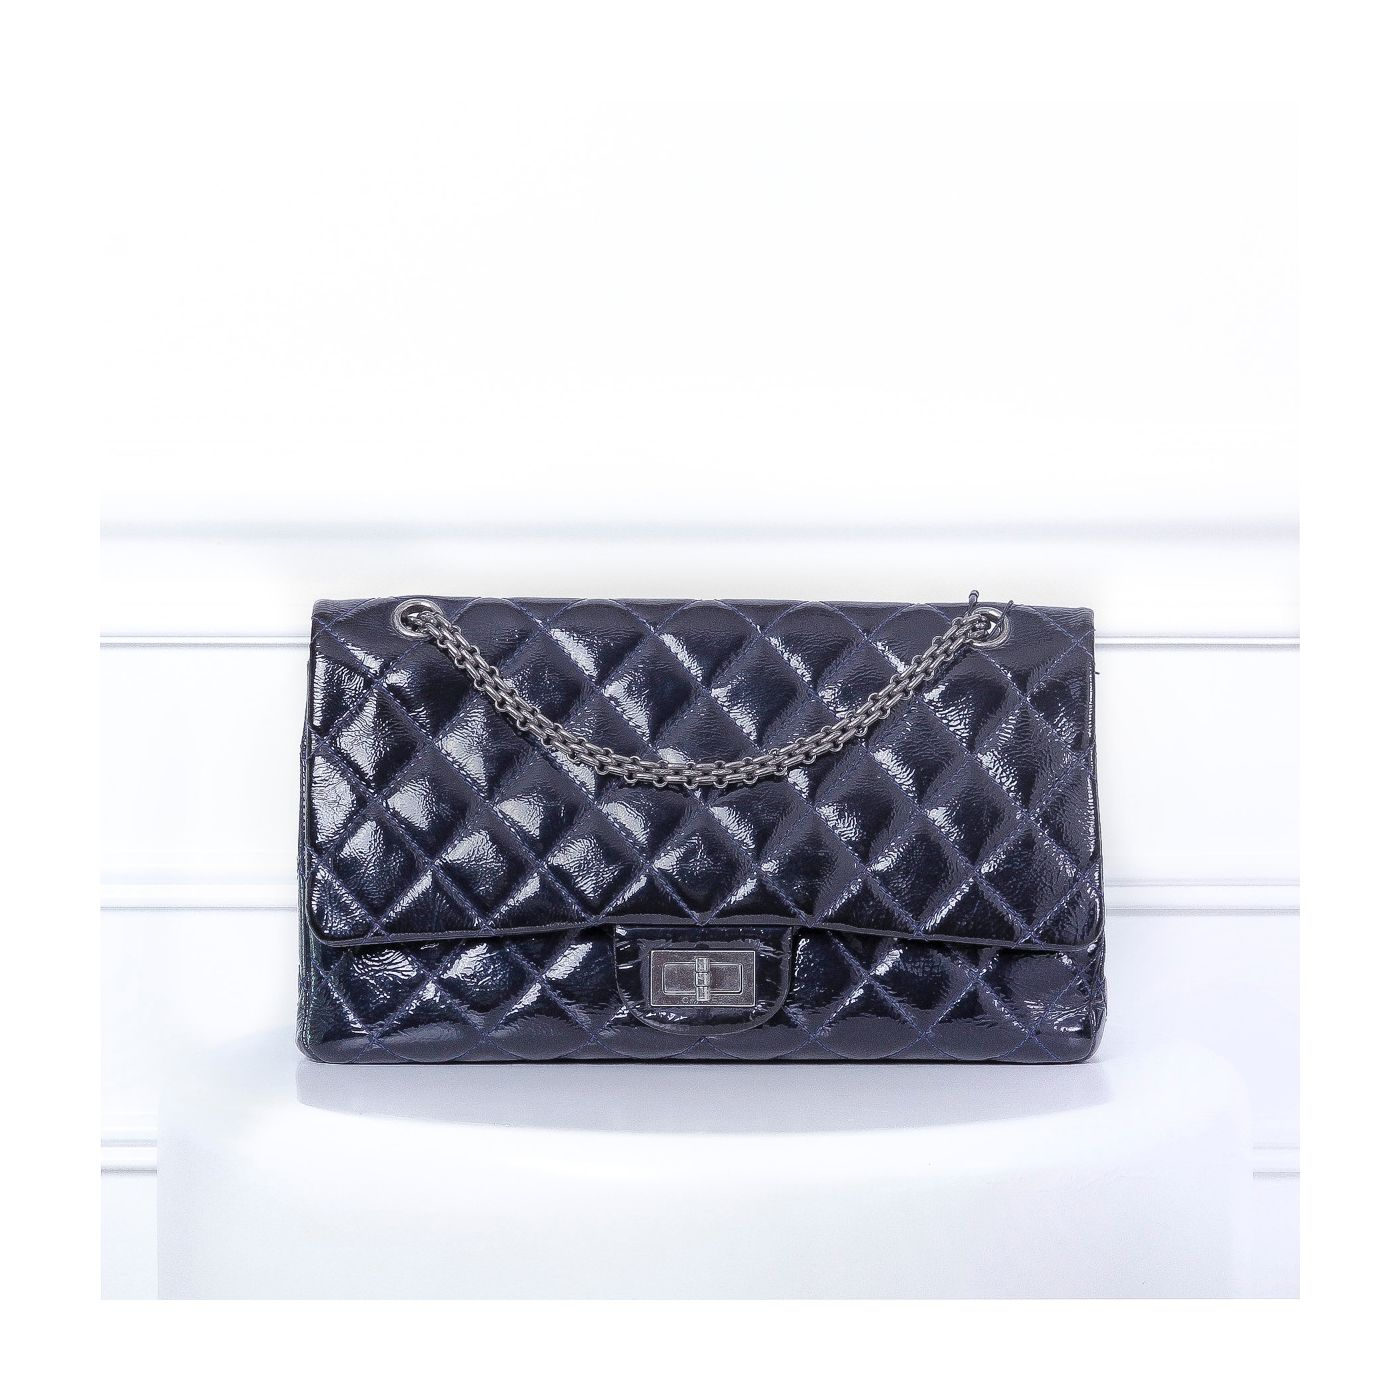 Chanel Blue Reissue Tote Double Flap Bag